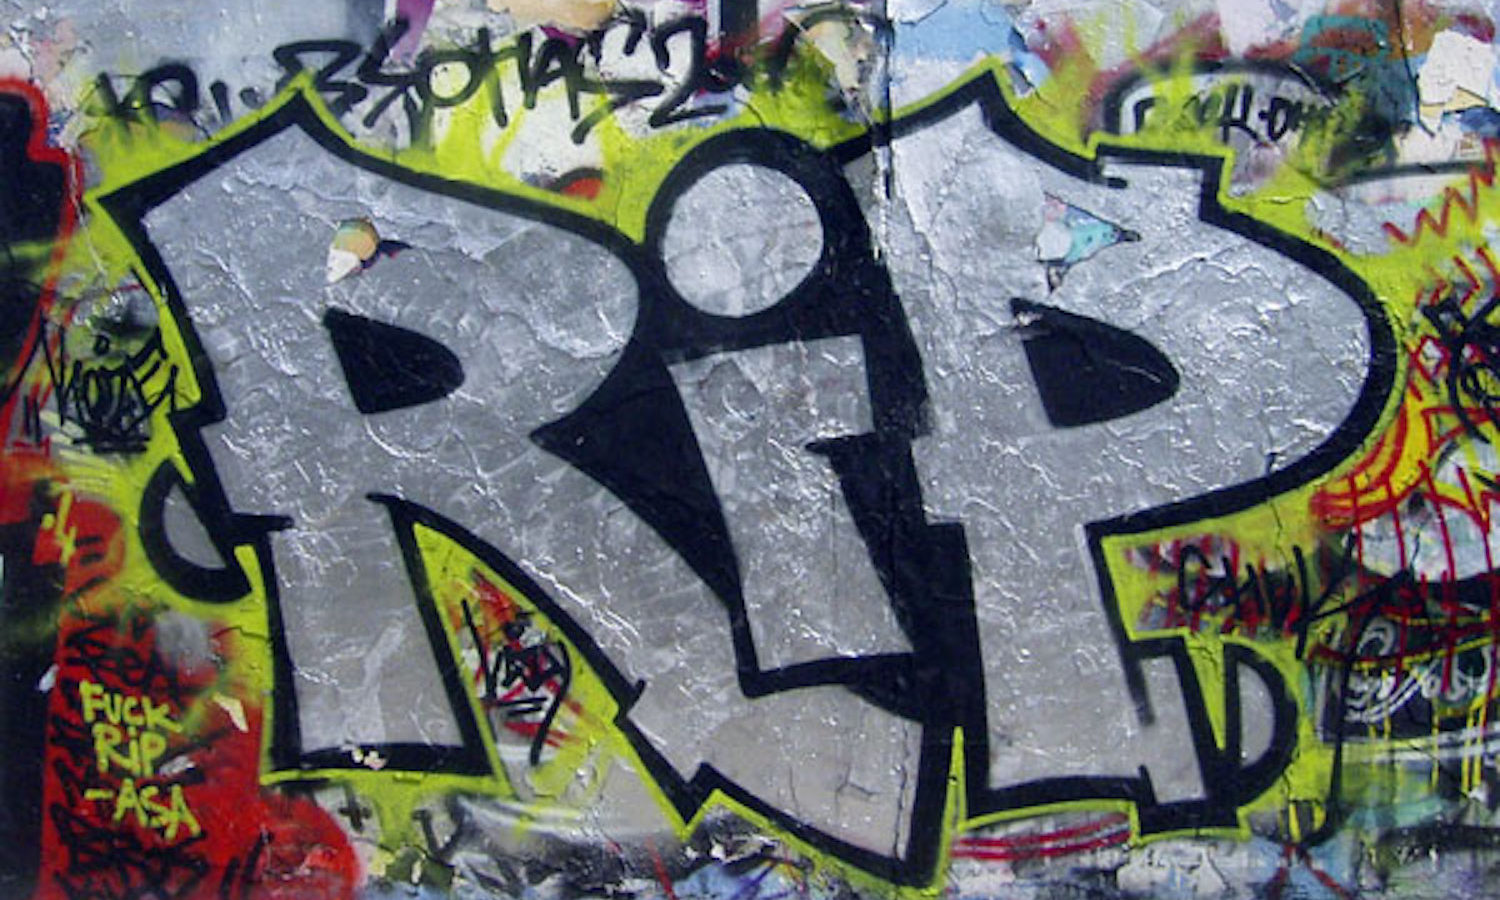 graffiti RIP, photo CC-by-nc par Duncan C https://flic.kr/p/gn9hH.